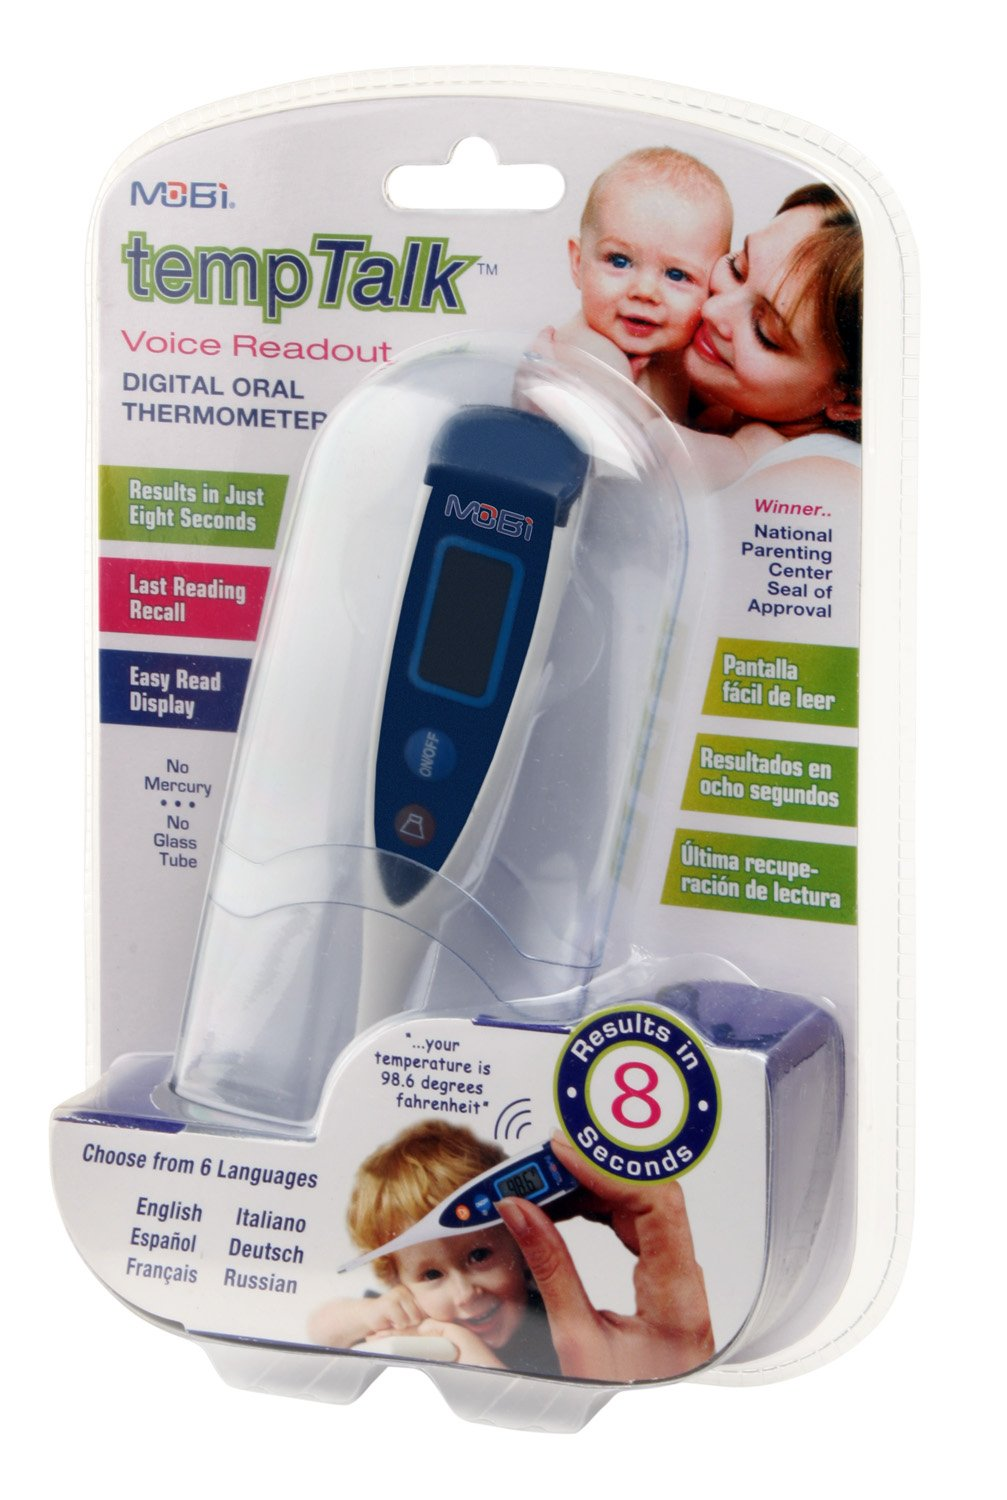 Amazon.com : MOBI TempTalk Digital Oral Thermometer (Discontinued by Manufacturer) : Bathtub Thermometers : Baby